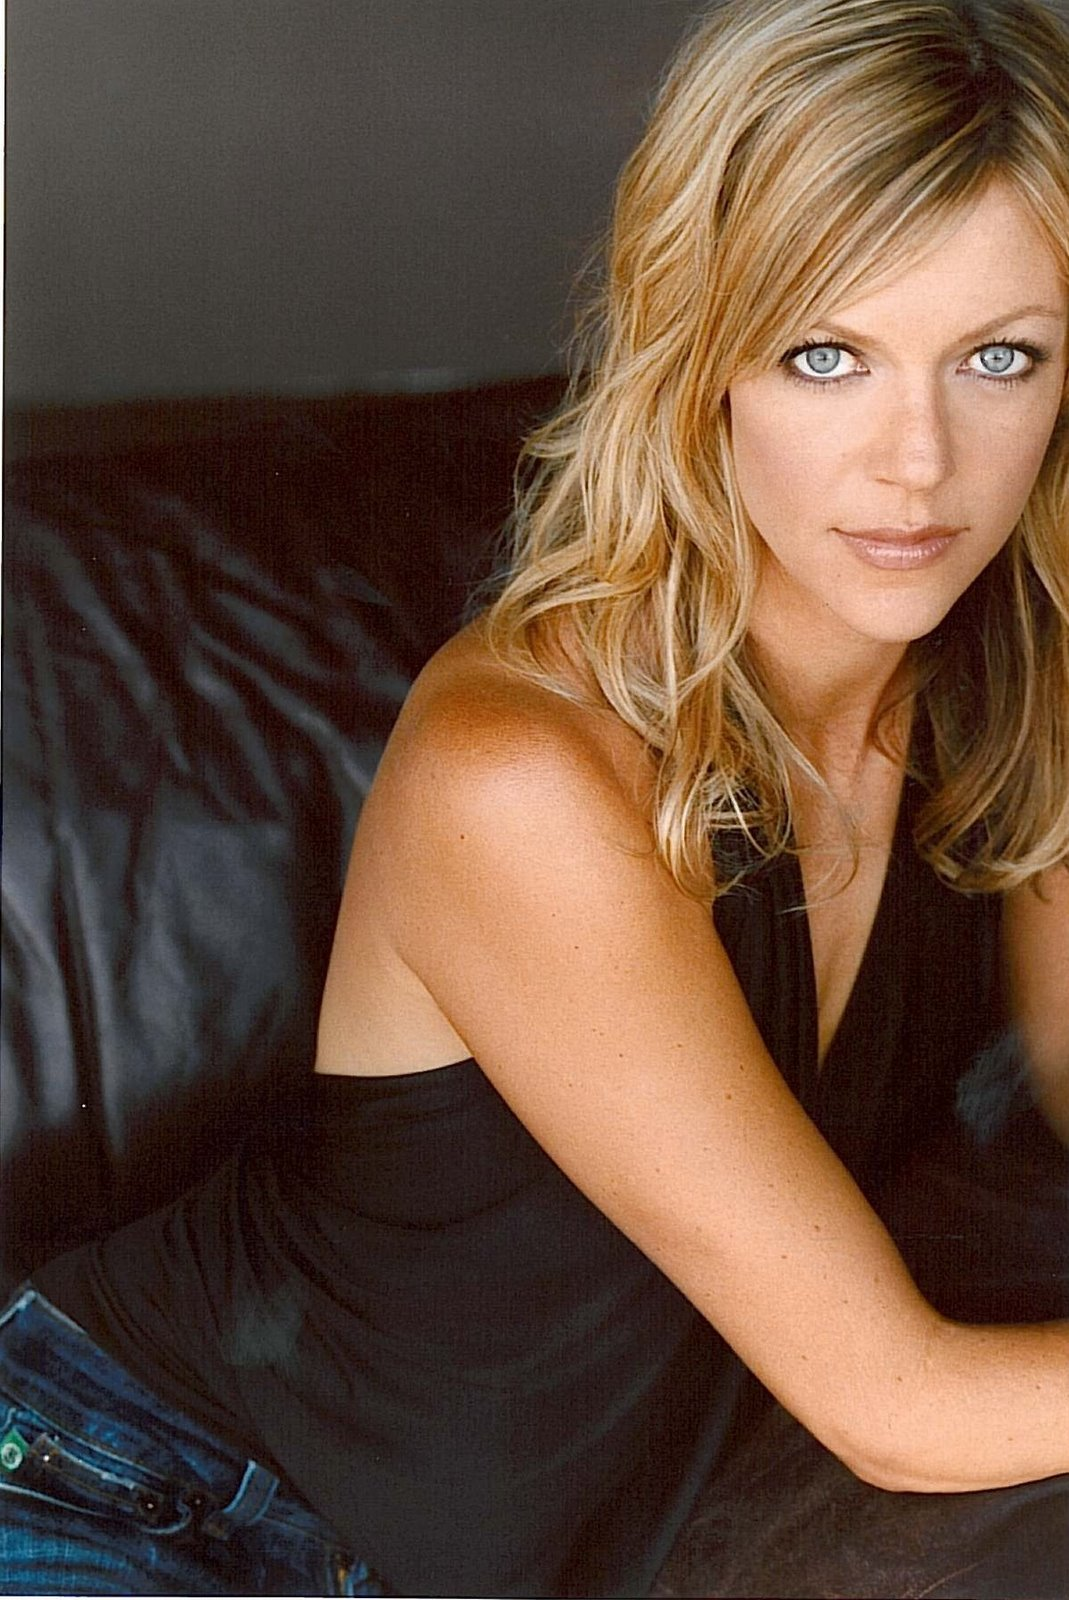 Celebrites Kaitlin Olson nude (87 photos), Tits, Leaked, Boobs, braless 2006